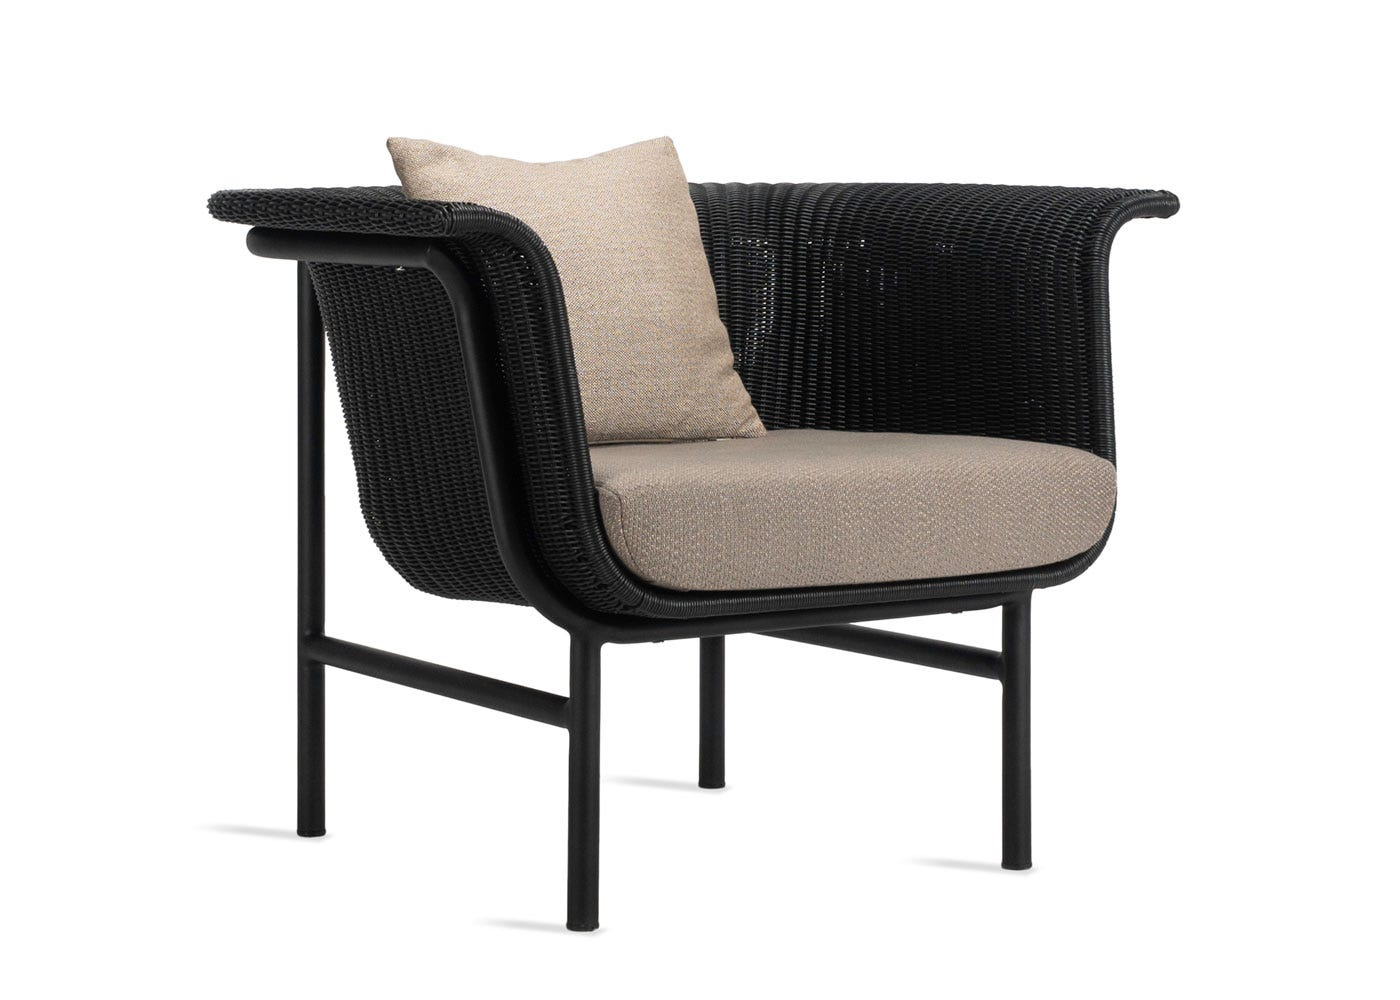 As shown: Wicked lounge chair - Side profile.